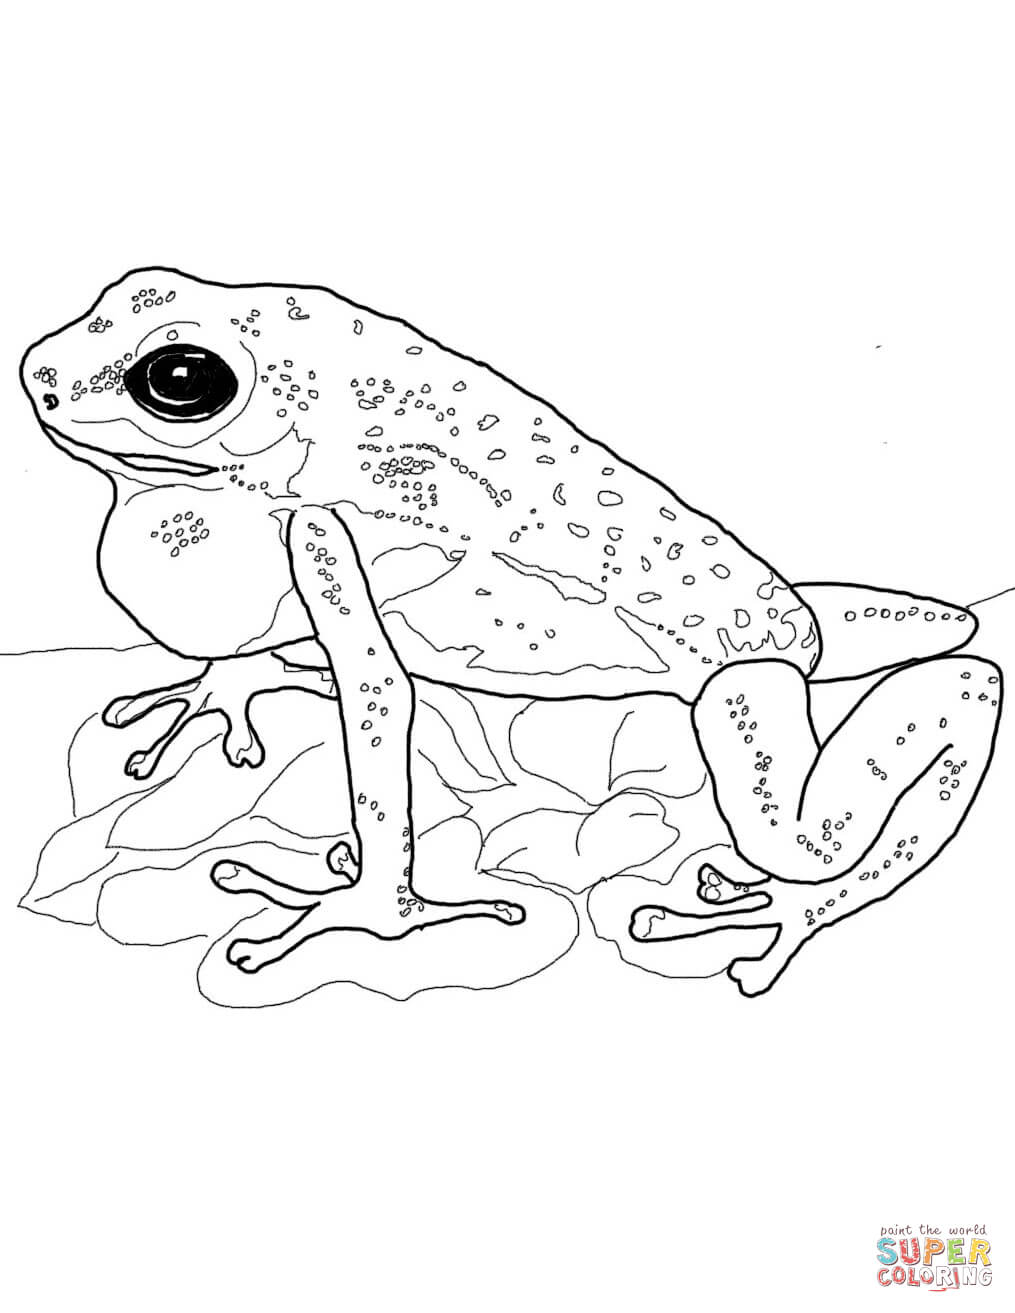 coqui coloring page puerto rico coloring pages at getdrawings free download page coqui coloring